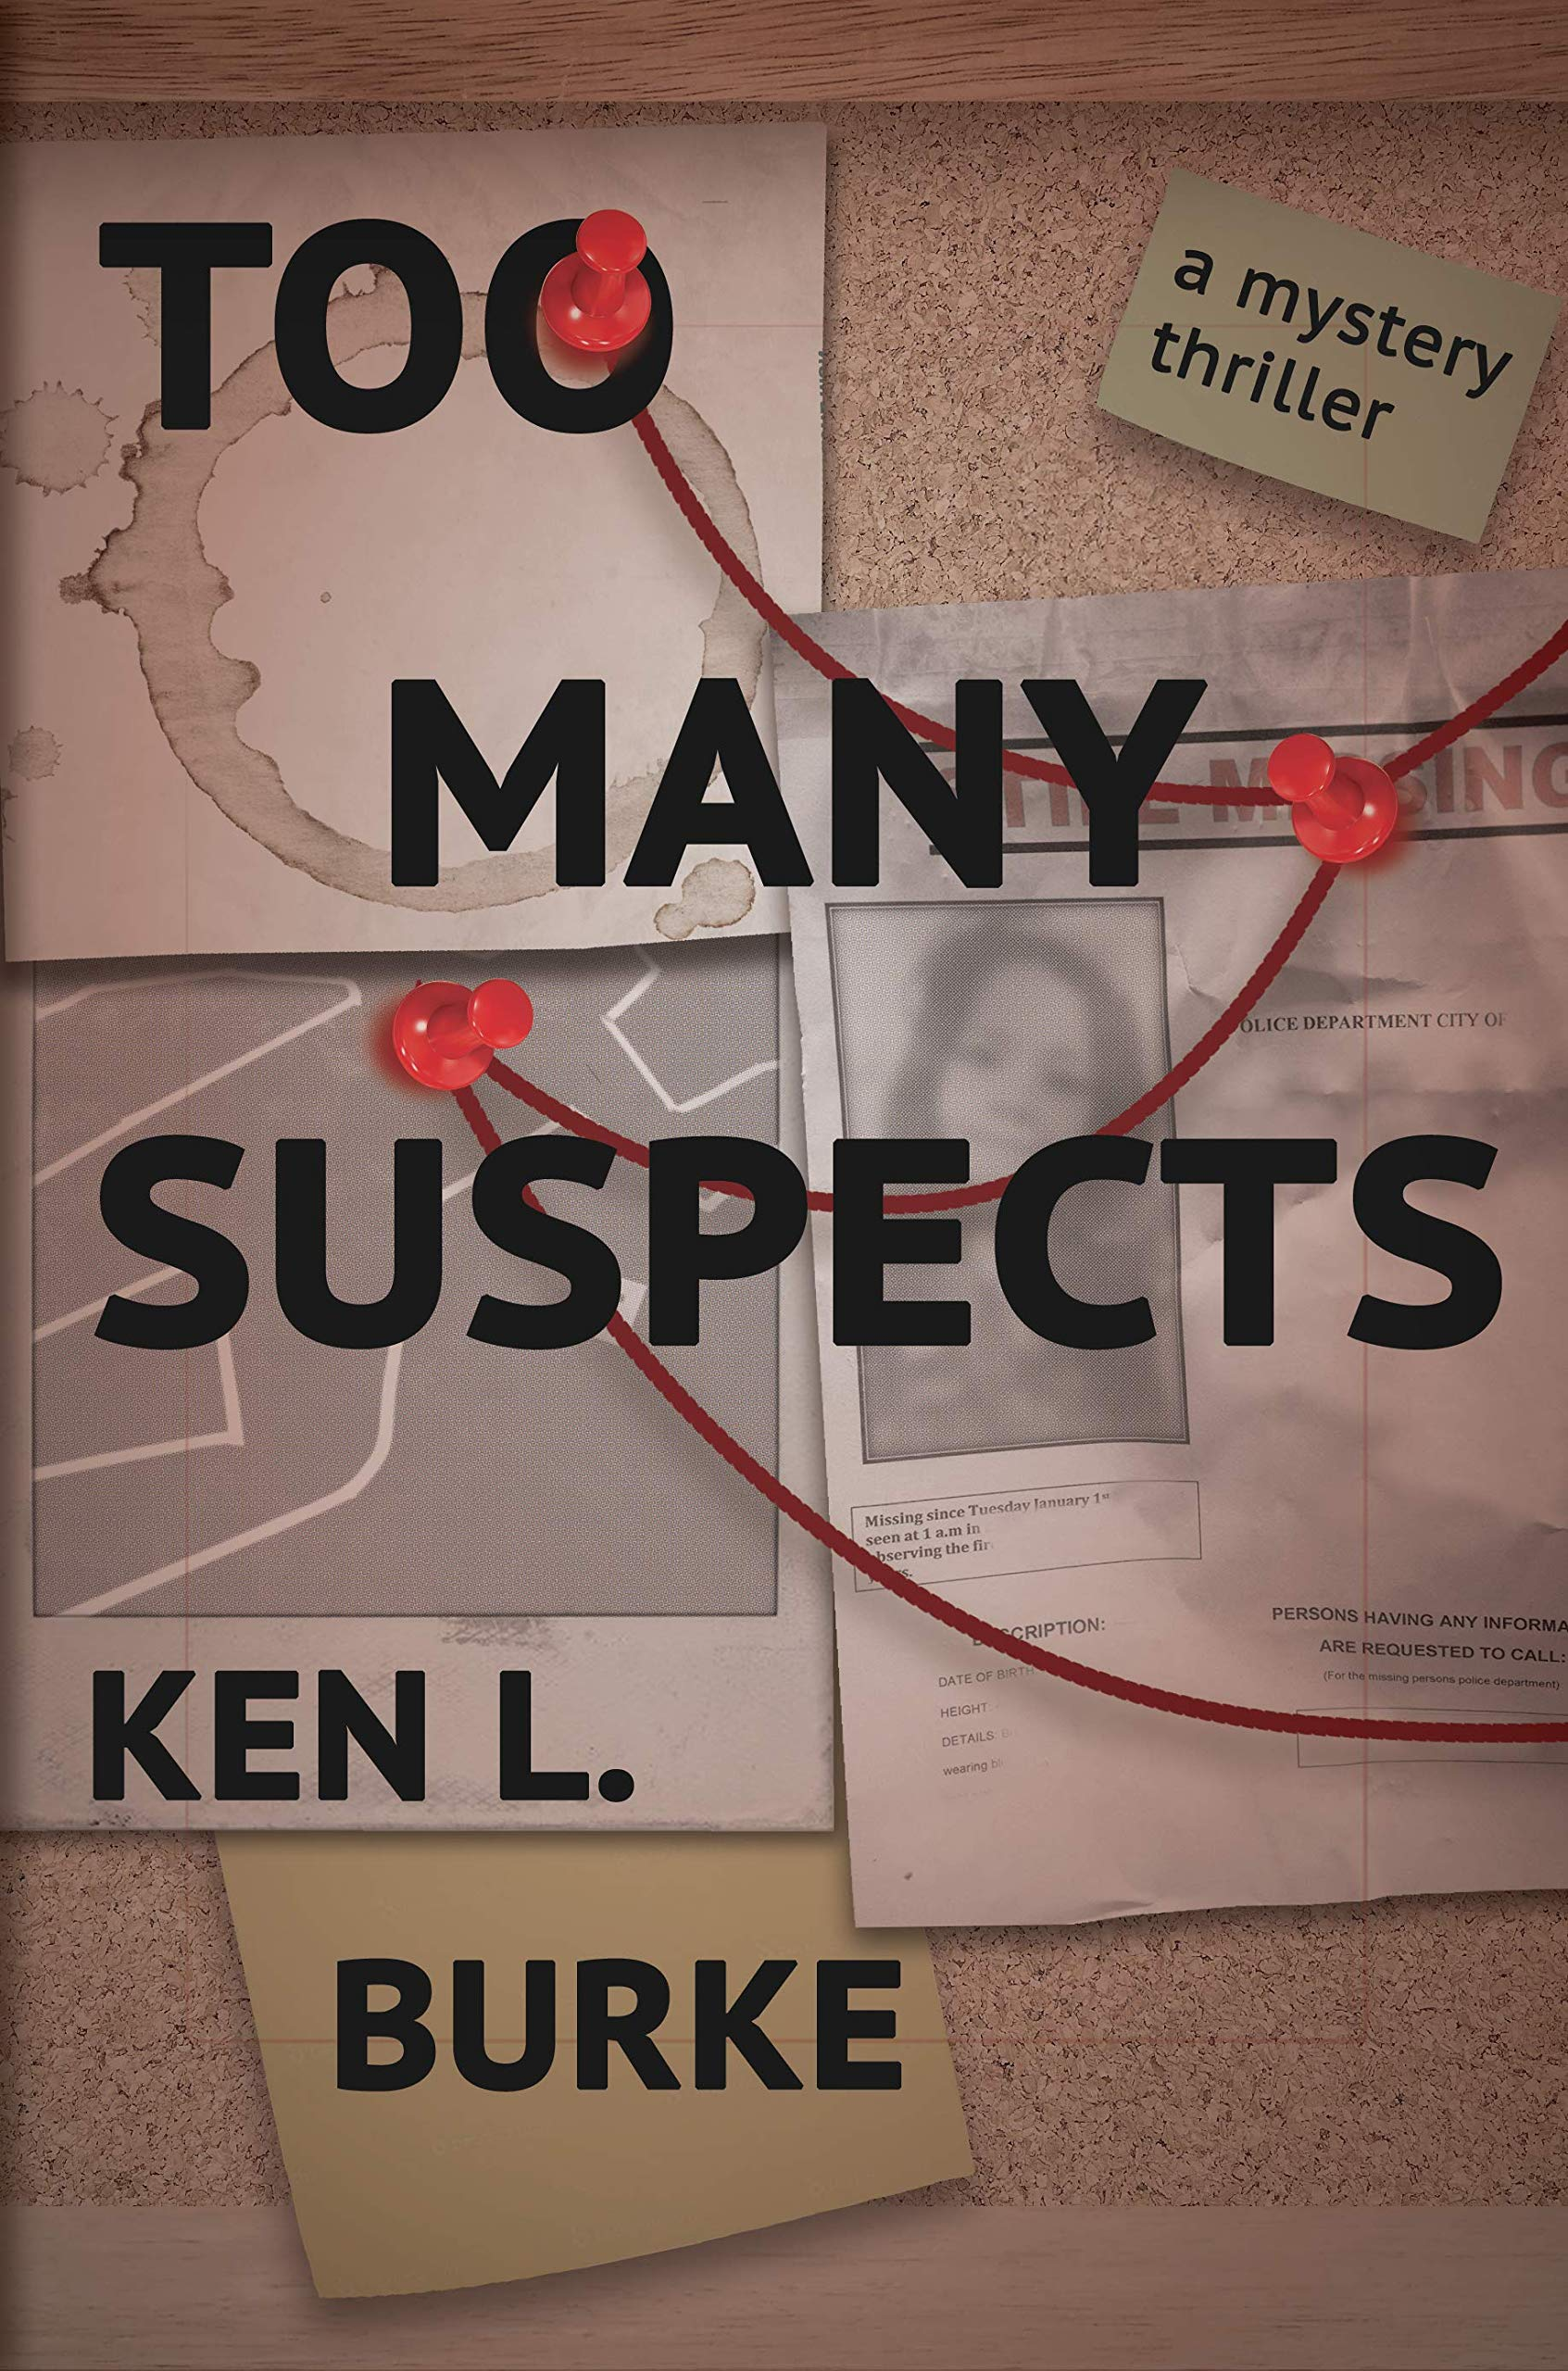 Too Many Suspects: A Mystery/Thriller